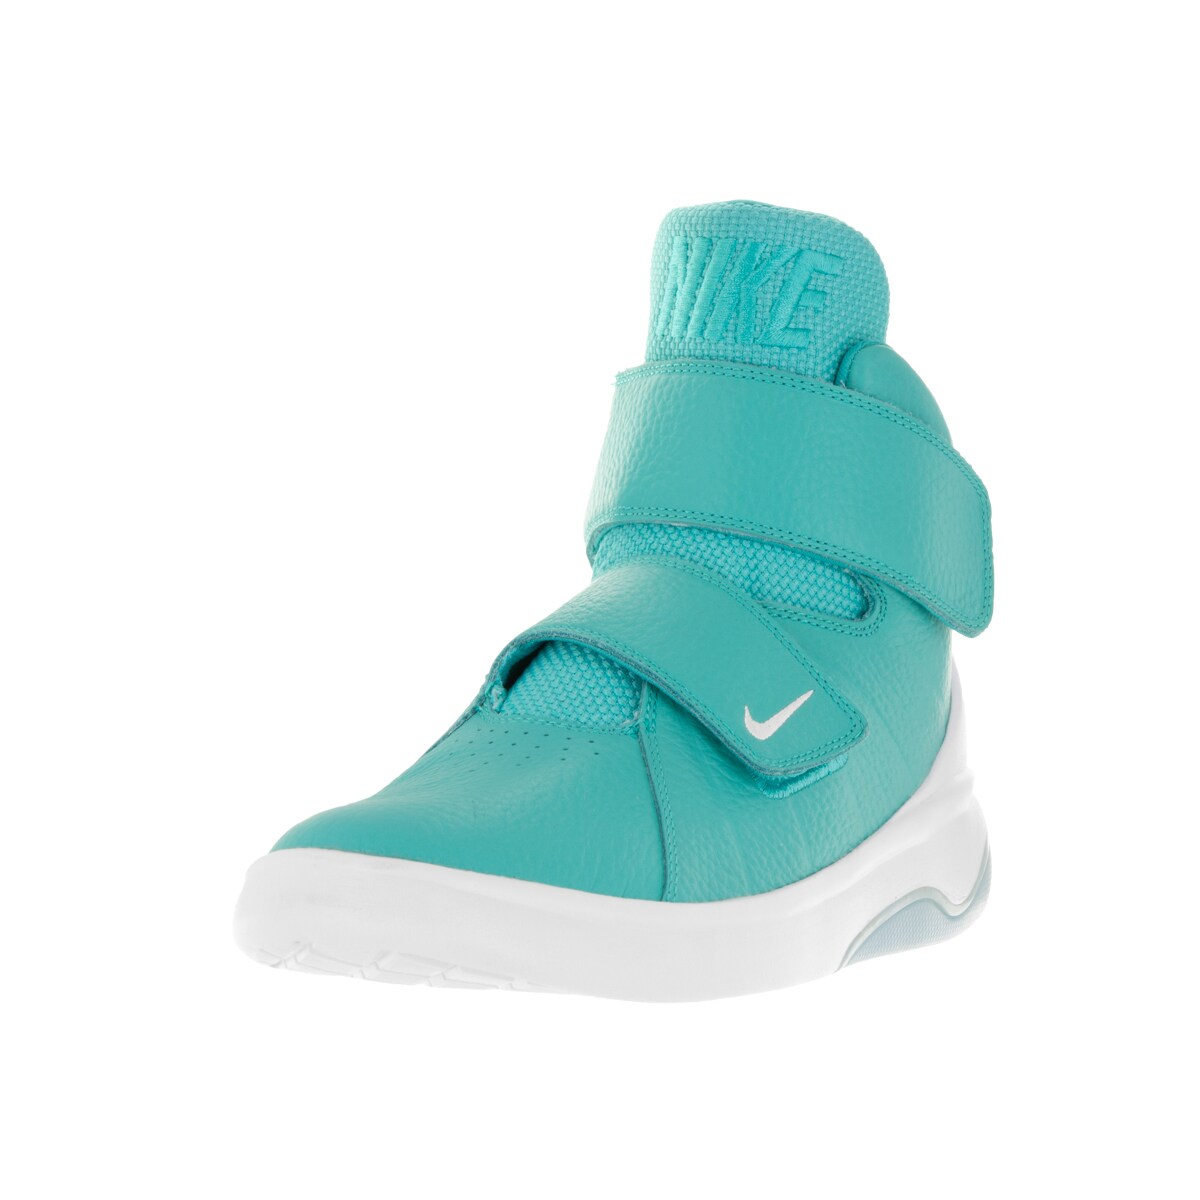 Nike Kids' Marxman Hyper Jade and White Synthetic Leather...